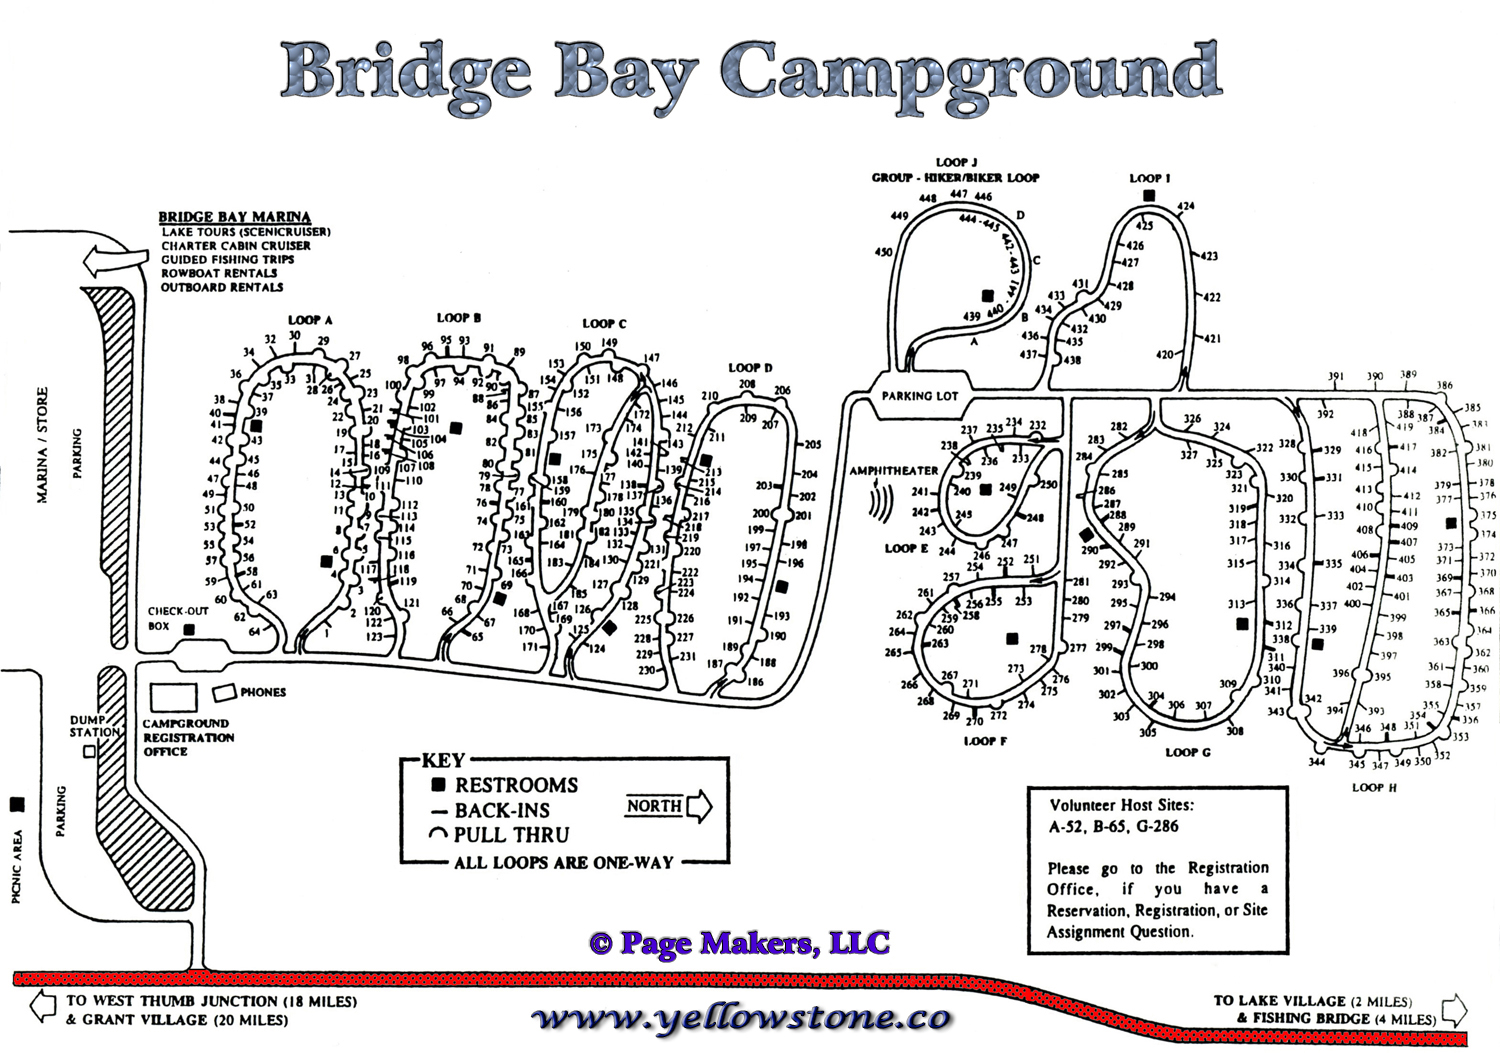 Bridge Bay Campground Map Yellowstone National Park © Page Makers, LLC